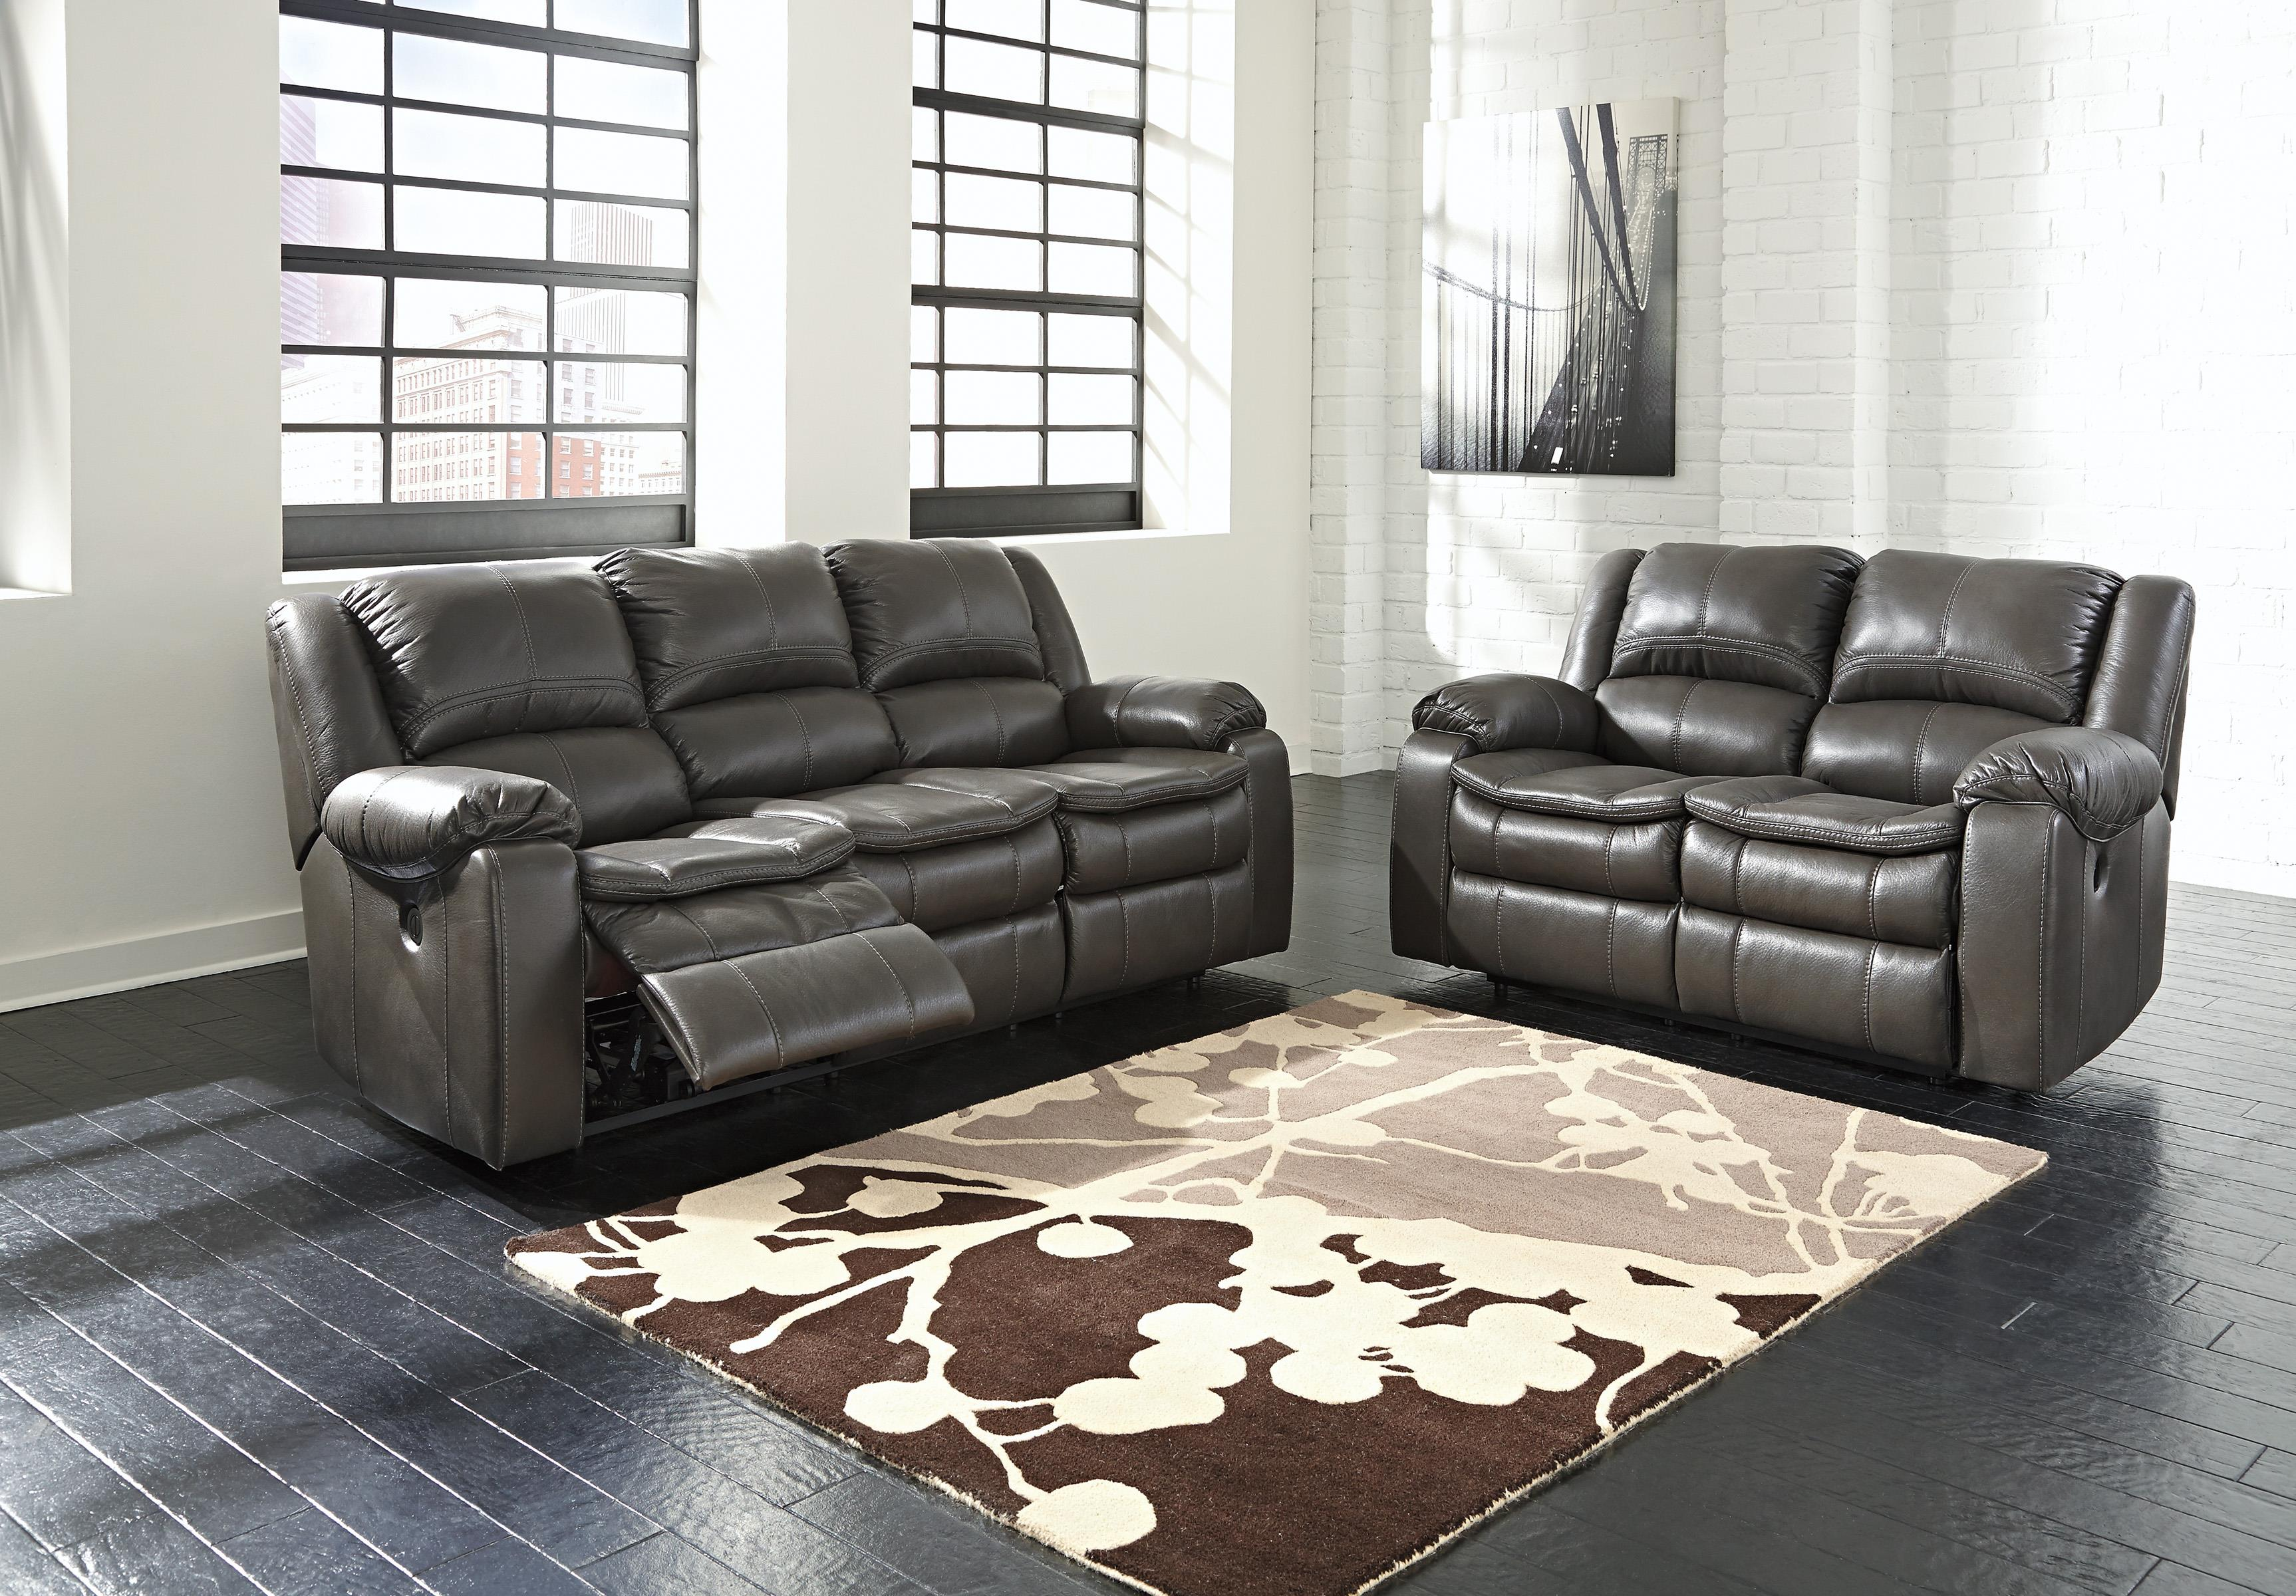 Signature Design by Ashley Long Knight Reclining Living Room Group - Item Number: 88906 Living Room Group 1